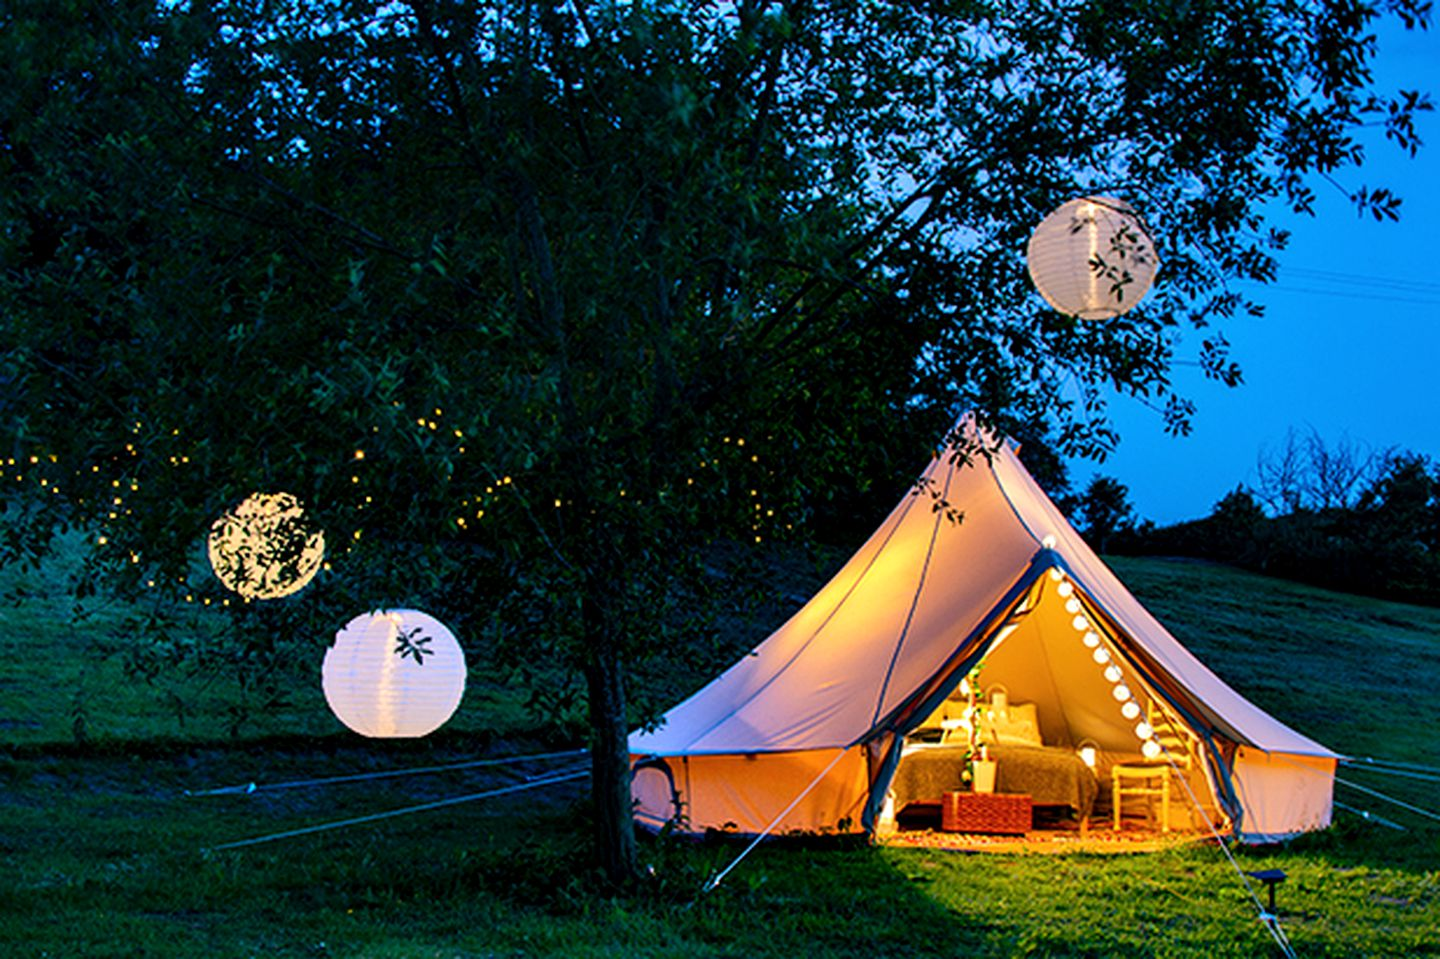 Bell Tents (Mouldsworth, England, United Kingdom)